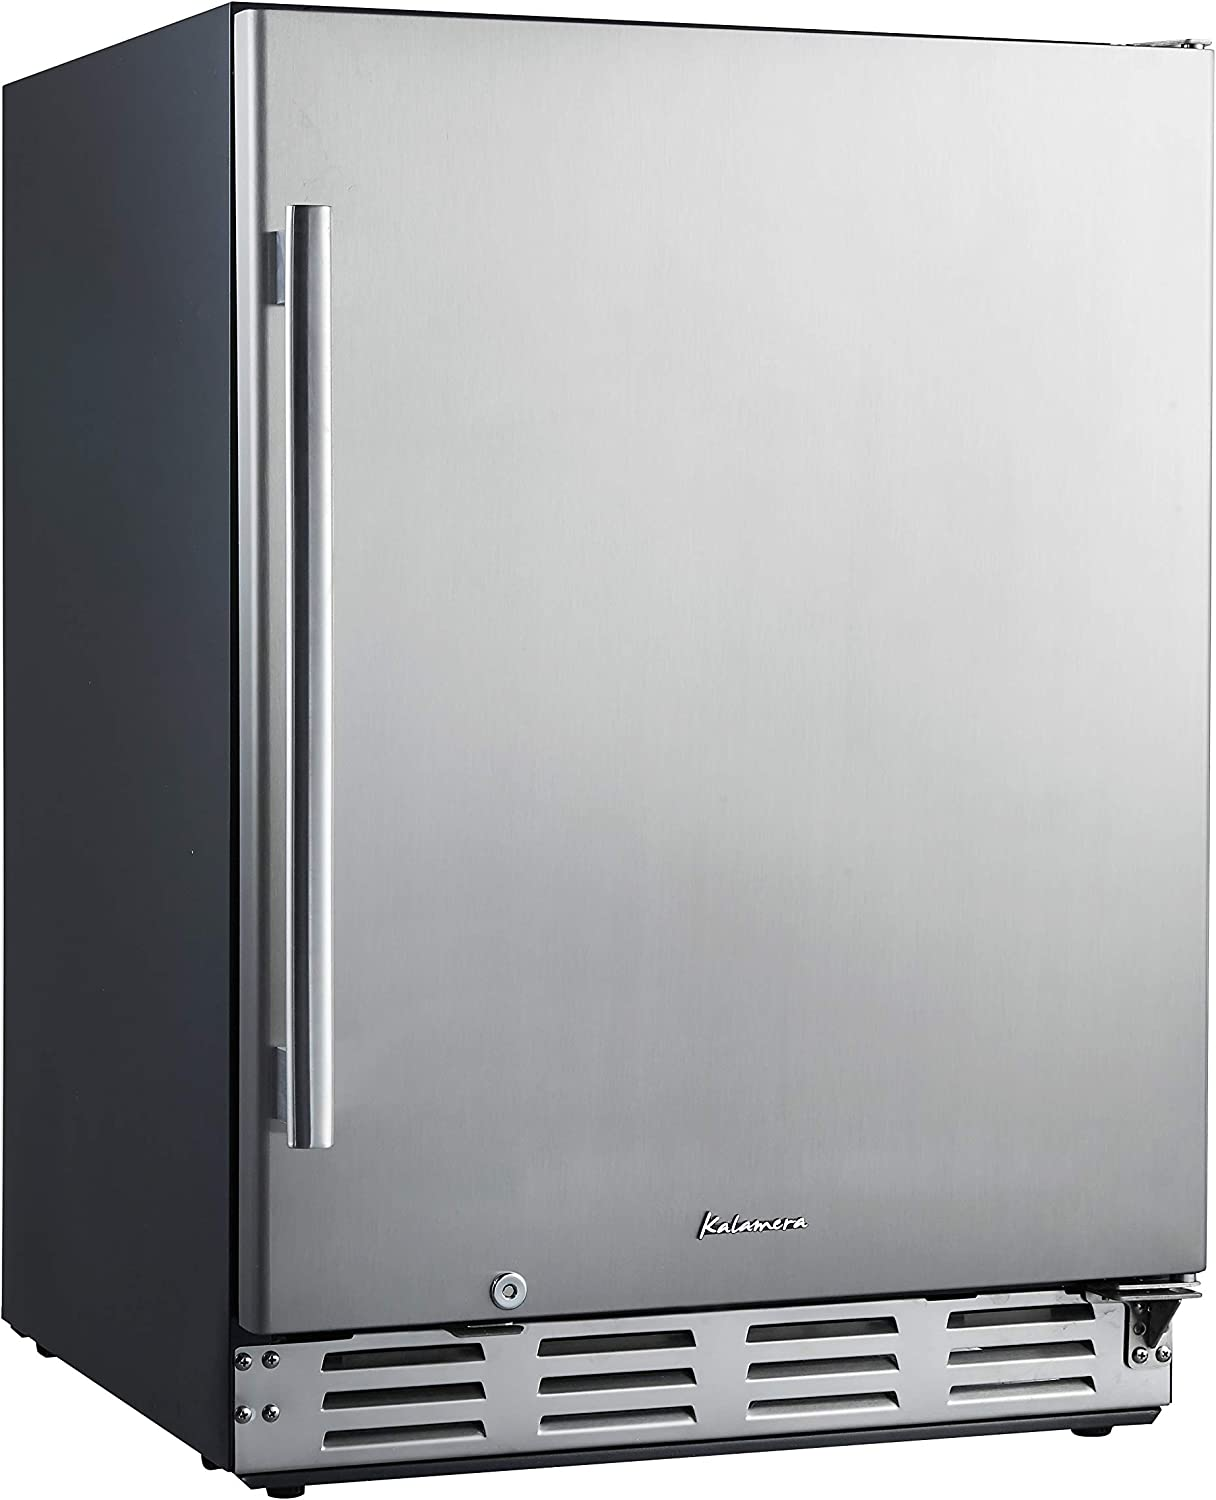 "Kalamera 24"" Stainless Steel Beverage Cooler - Soda and Beer Refrigerator - Drinks Fridge for Home and Commercial Use"